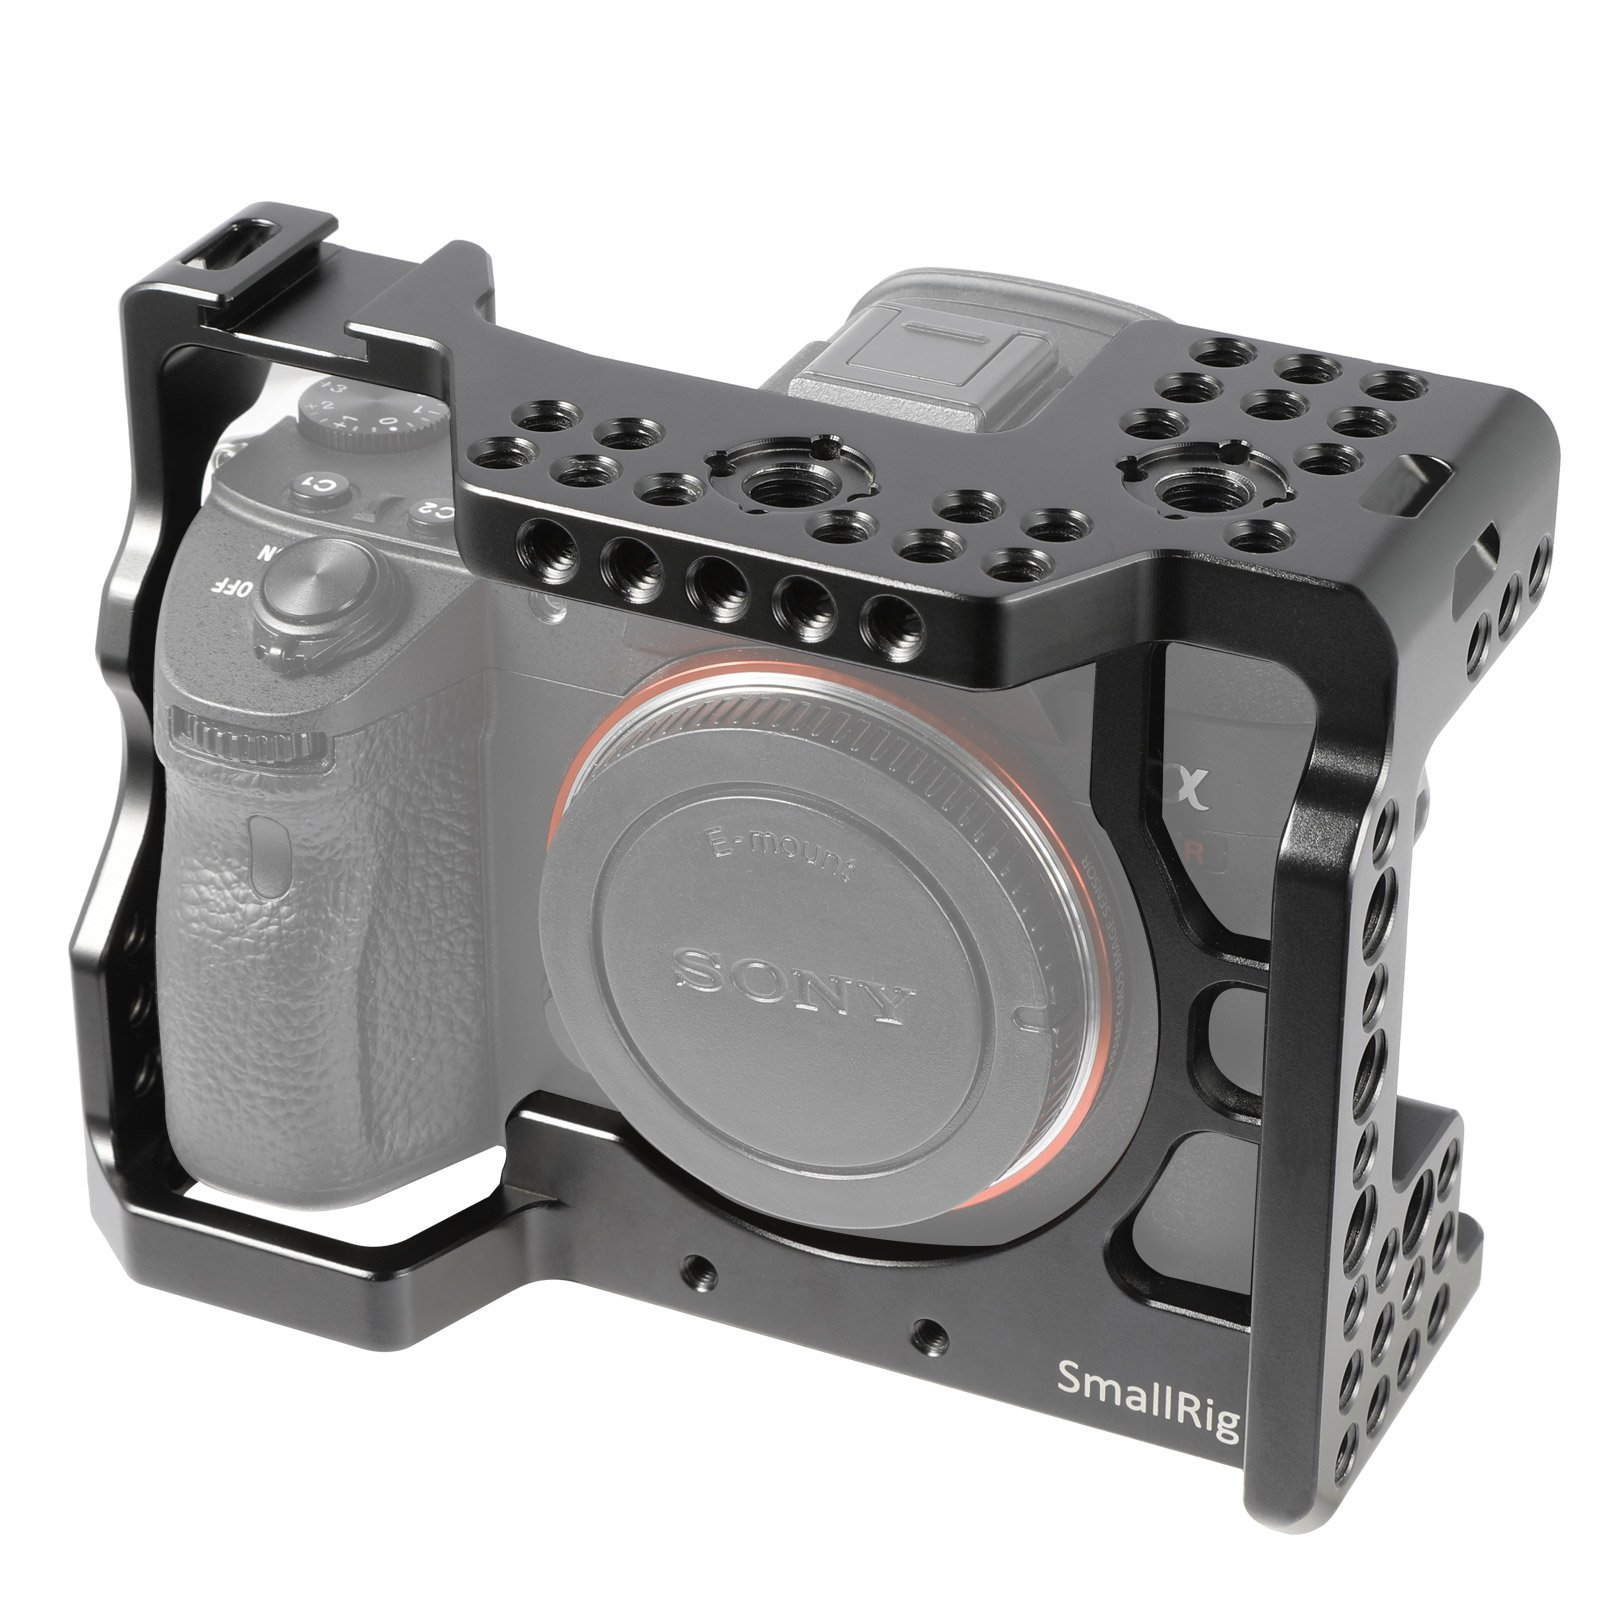 SmallRig A7RIII / A7III Cage for Sony A7RIII / A7III Camera (ILCE-7RM3 / a7R Mark III ) with Cold Shoe, Locating Pins - 2087